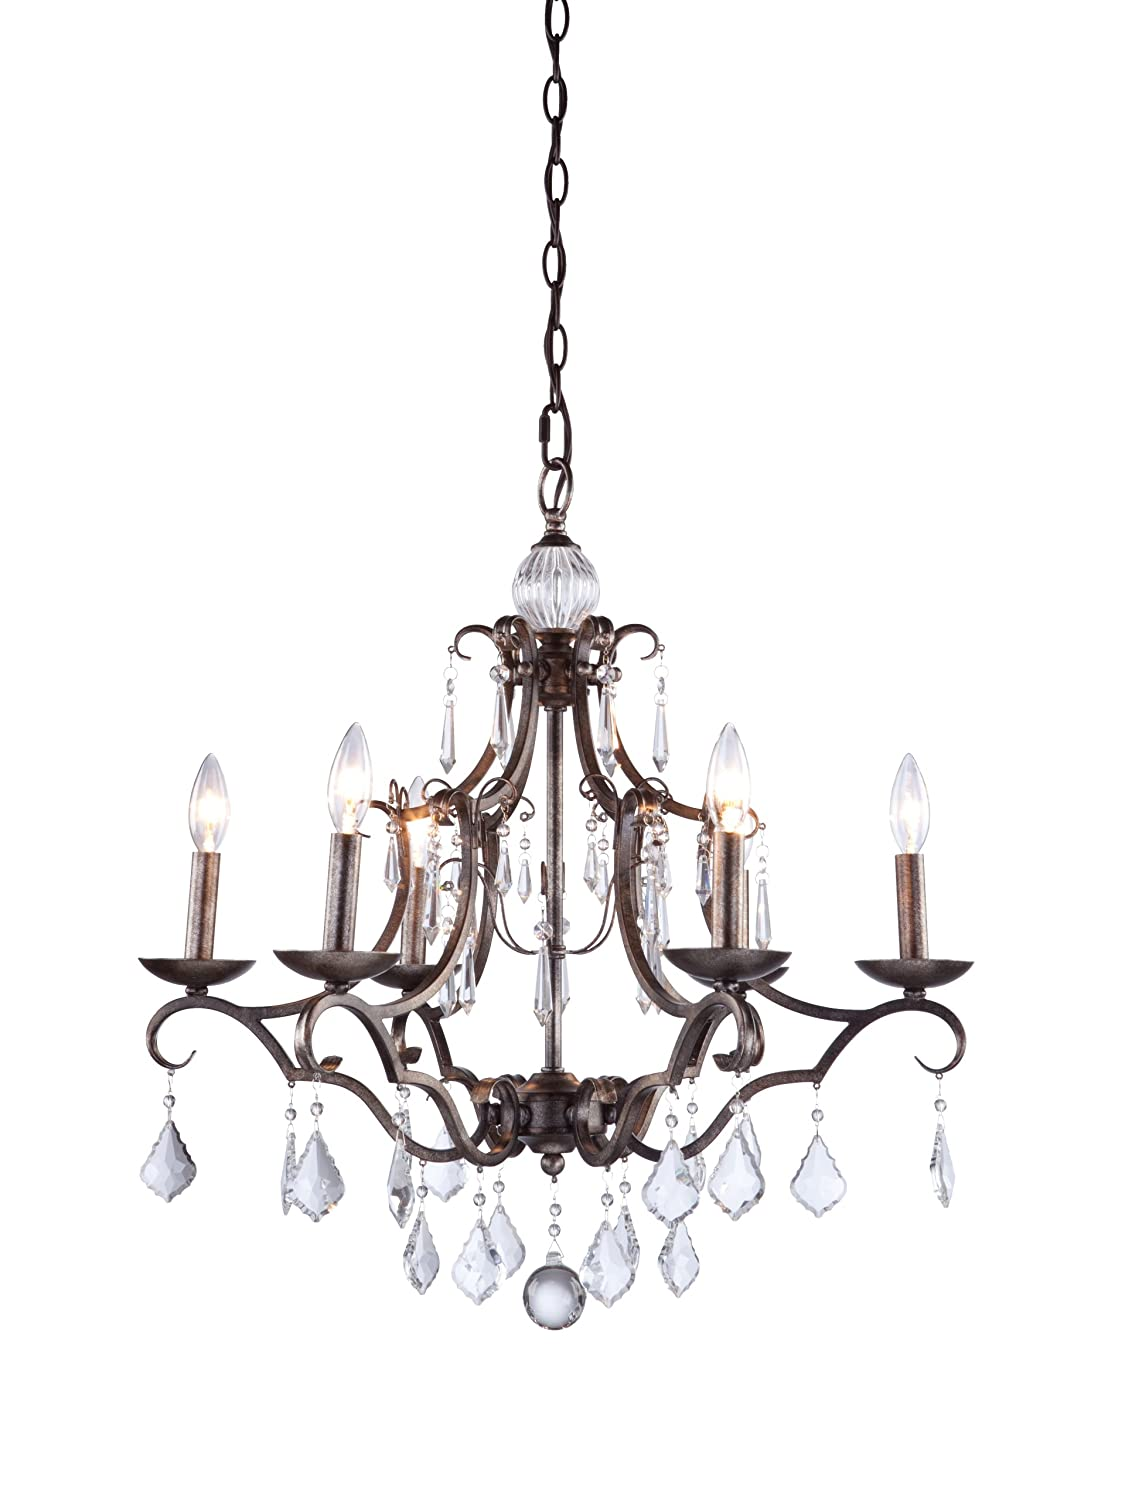 Artcraft lighting vintage 6 light chandelier dark brown amazon mozeypictures Gallery